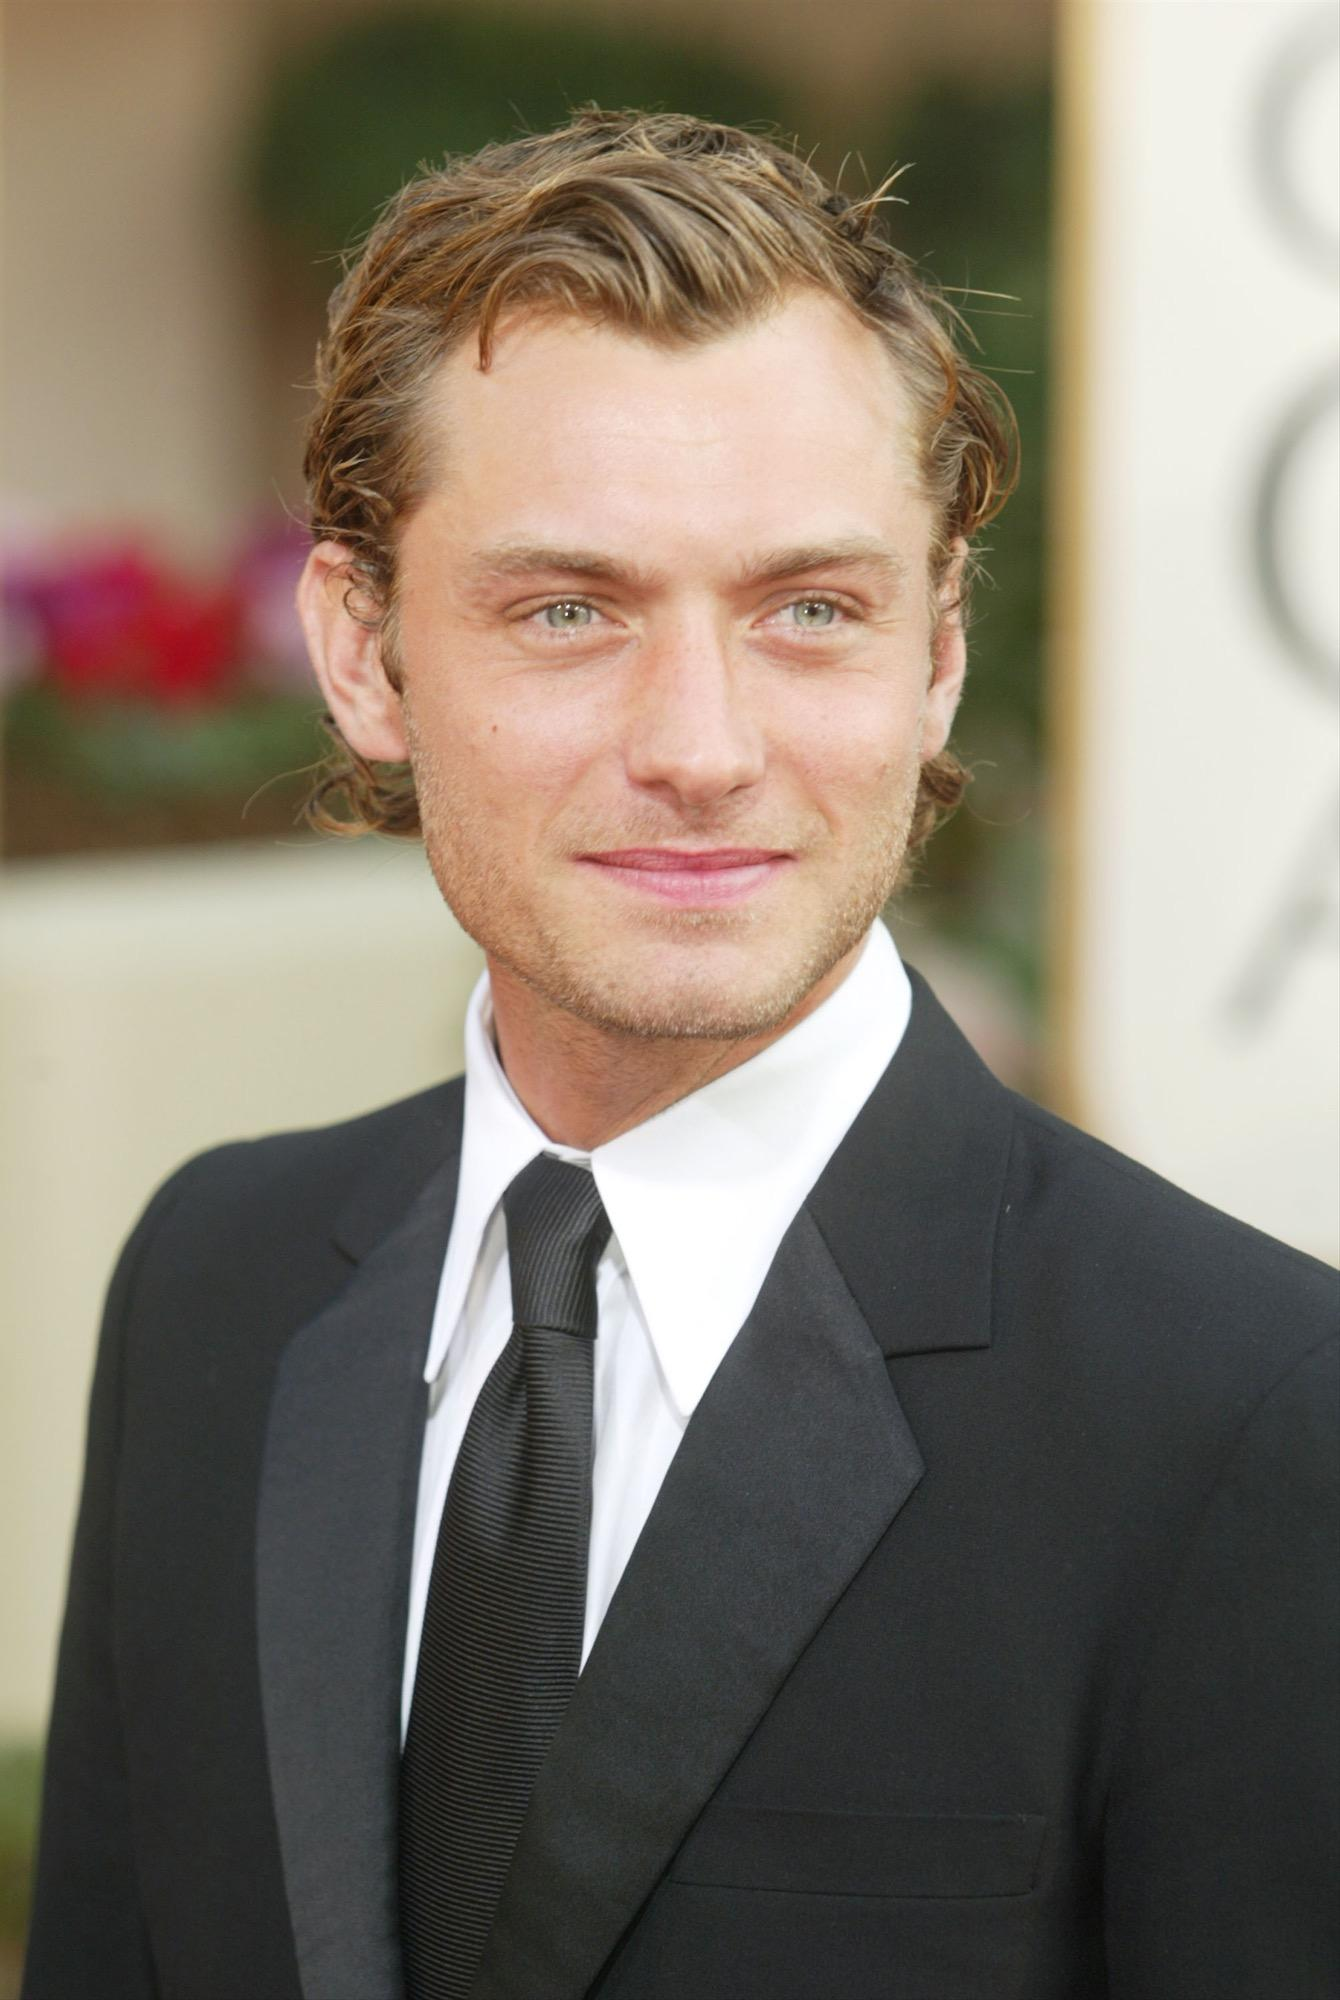 Sexiest Man Alive 2004 - Jude Law